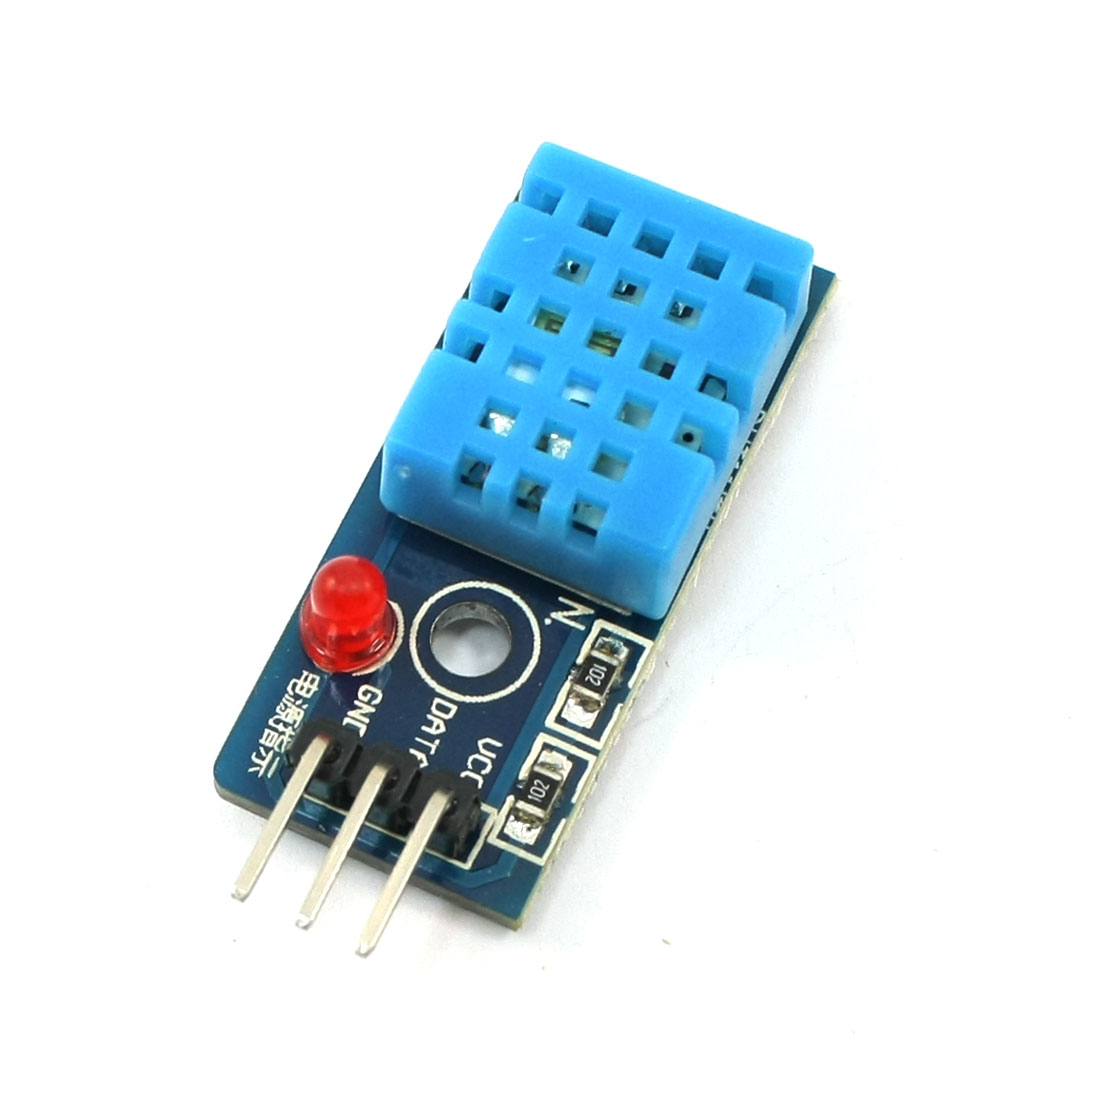 Digital Temperature Humidity Sensor Module Board 3 Pin Blue DC3.3V-5V